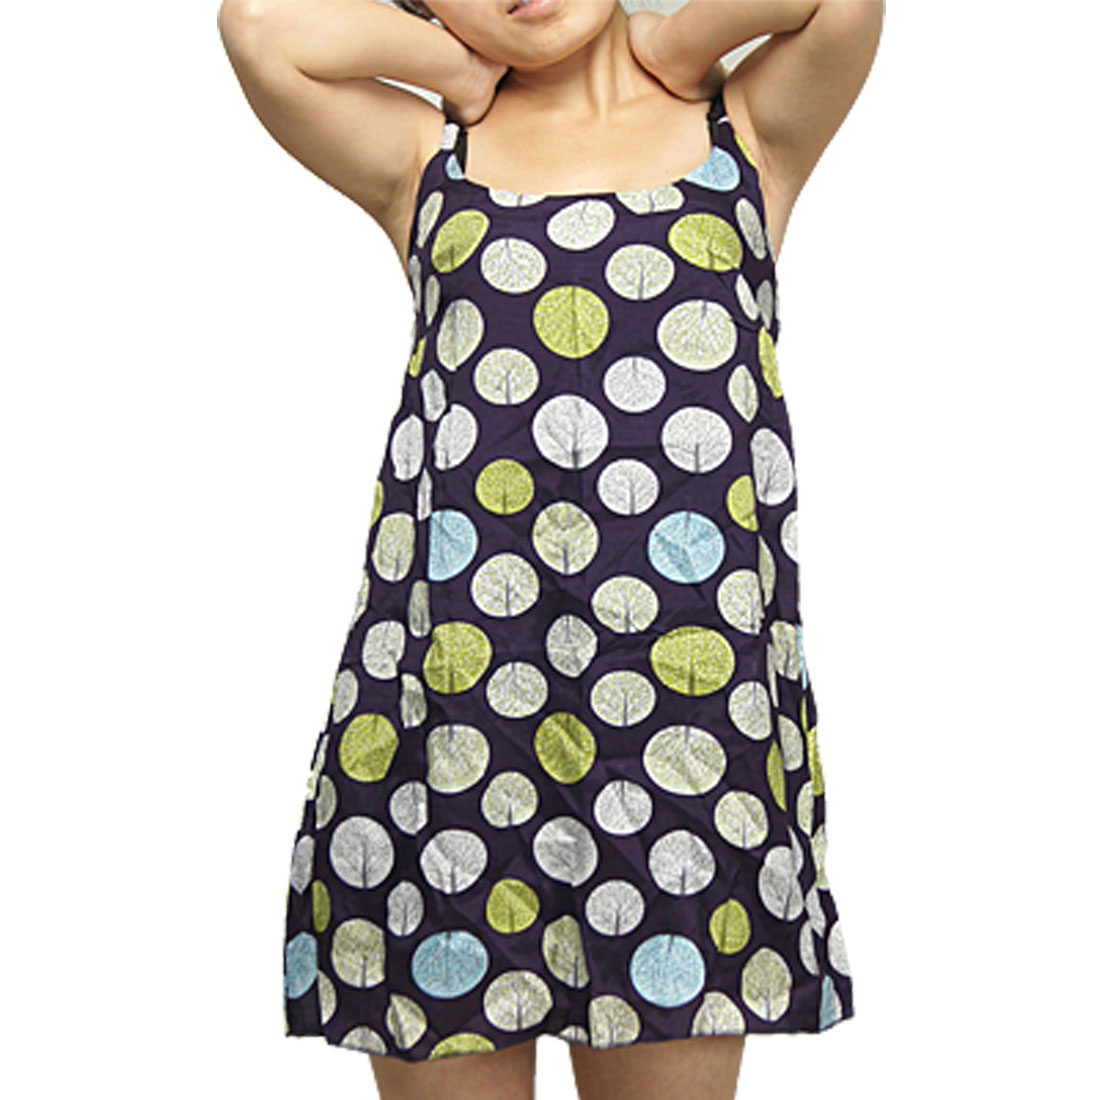 Girls Mini Tree Plants Printed Adjustable Spaghetti Strap Dress